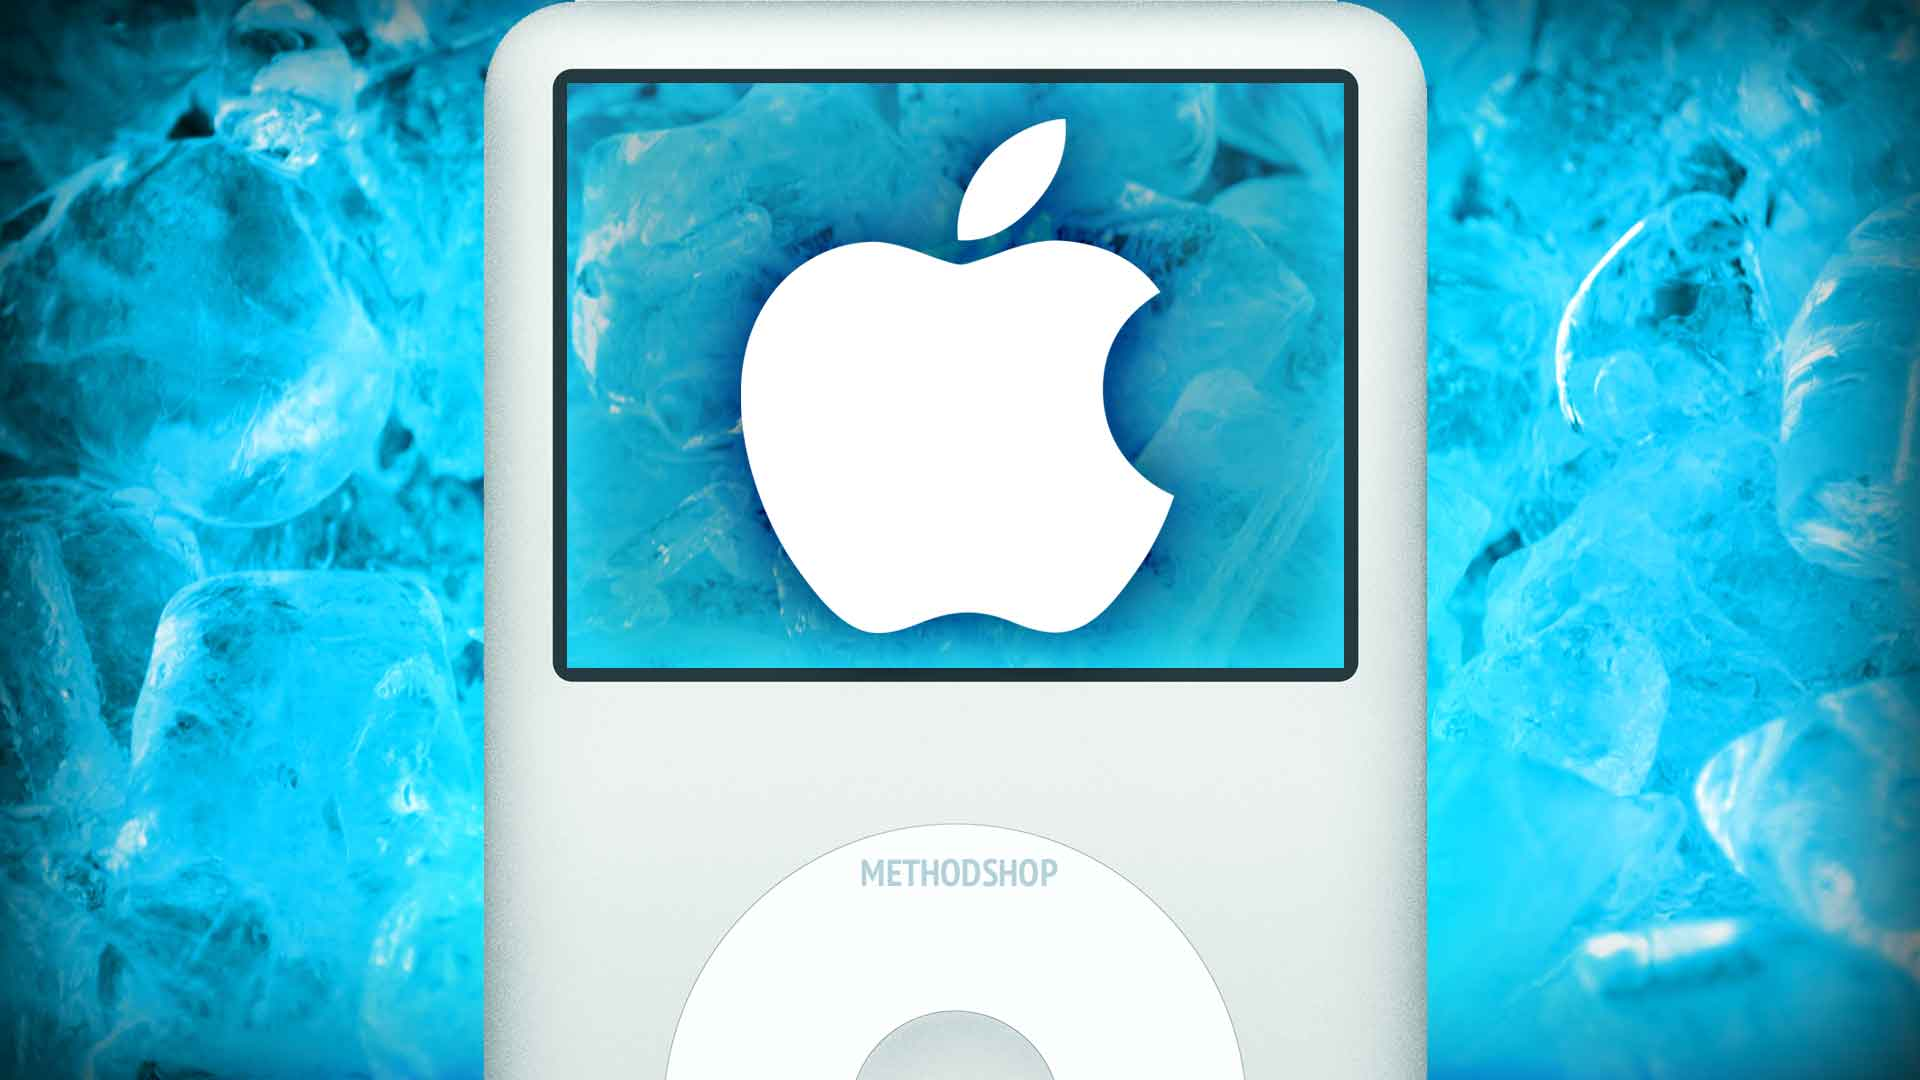 iPod Frozen in Ice